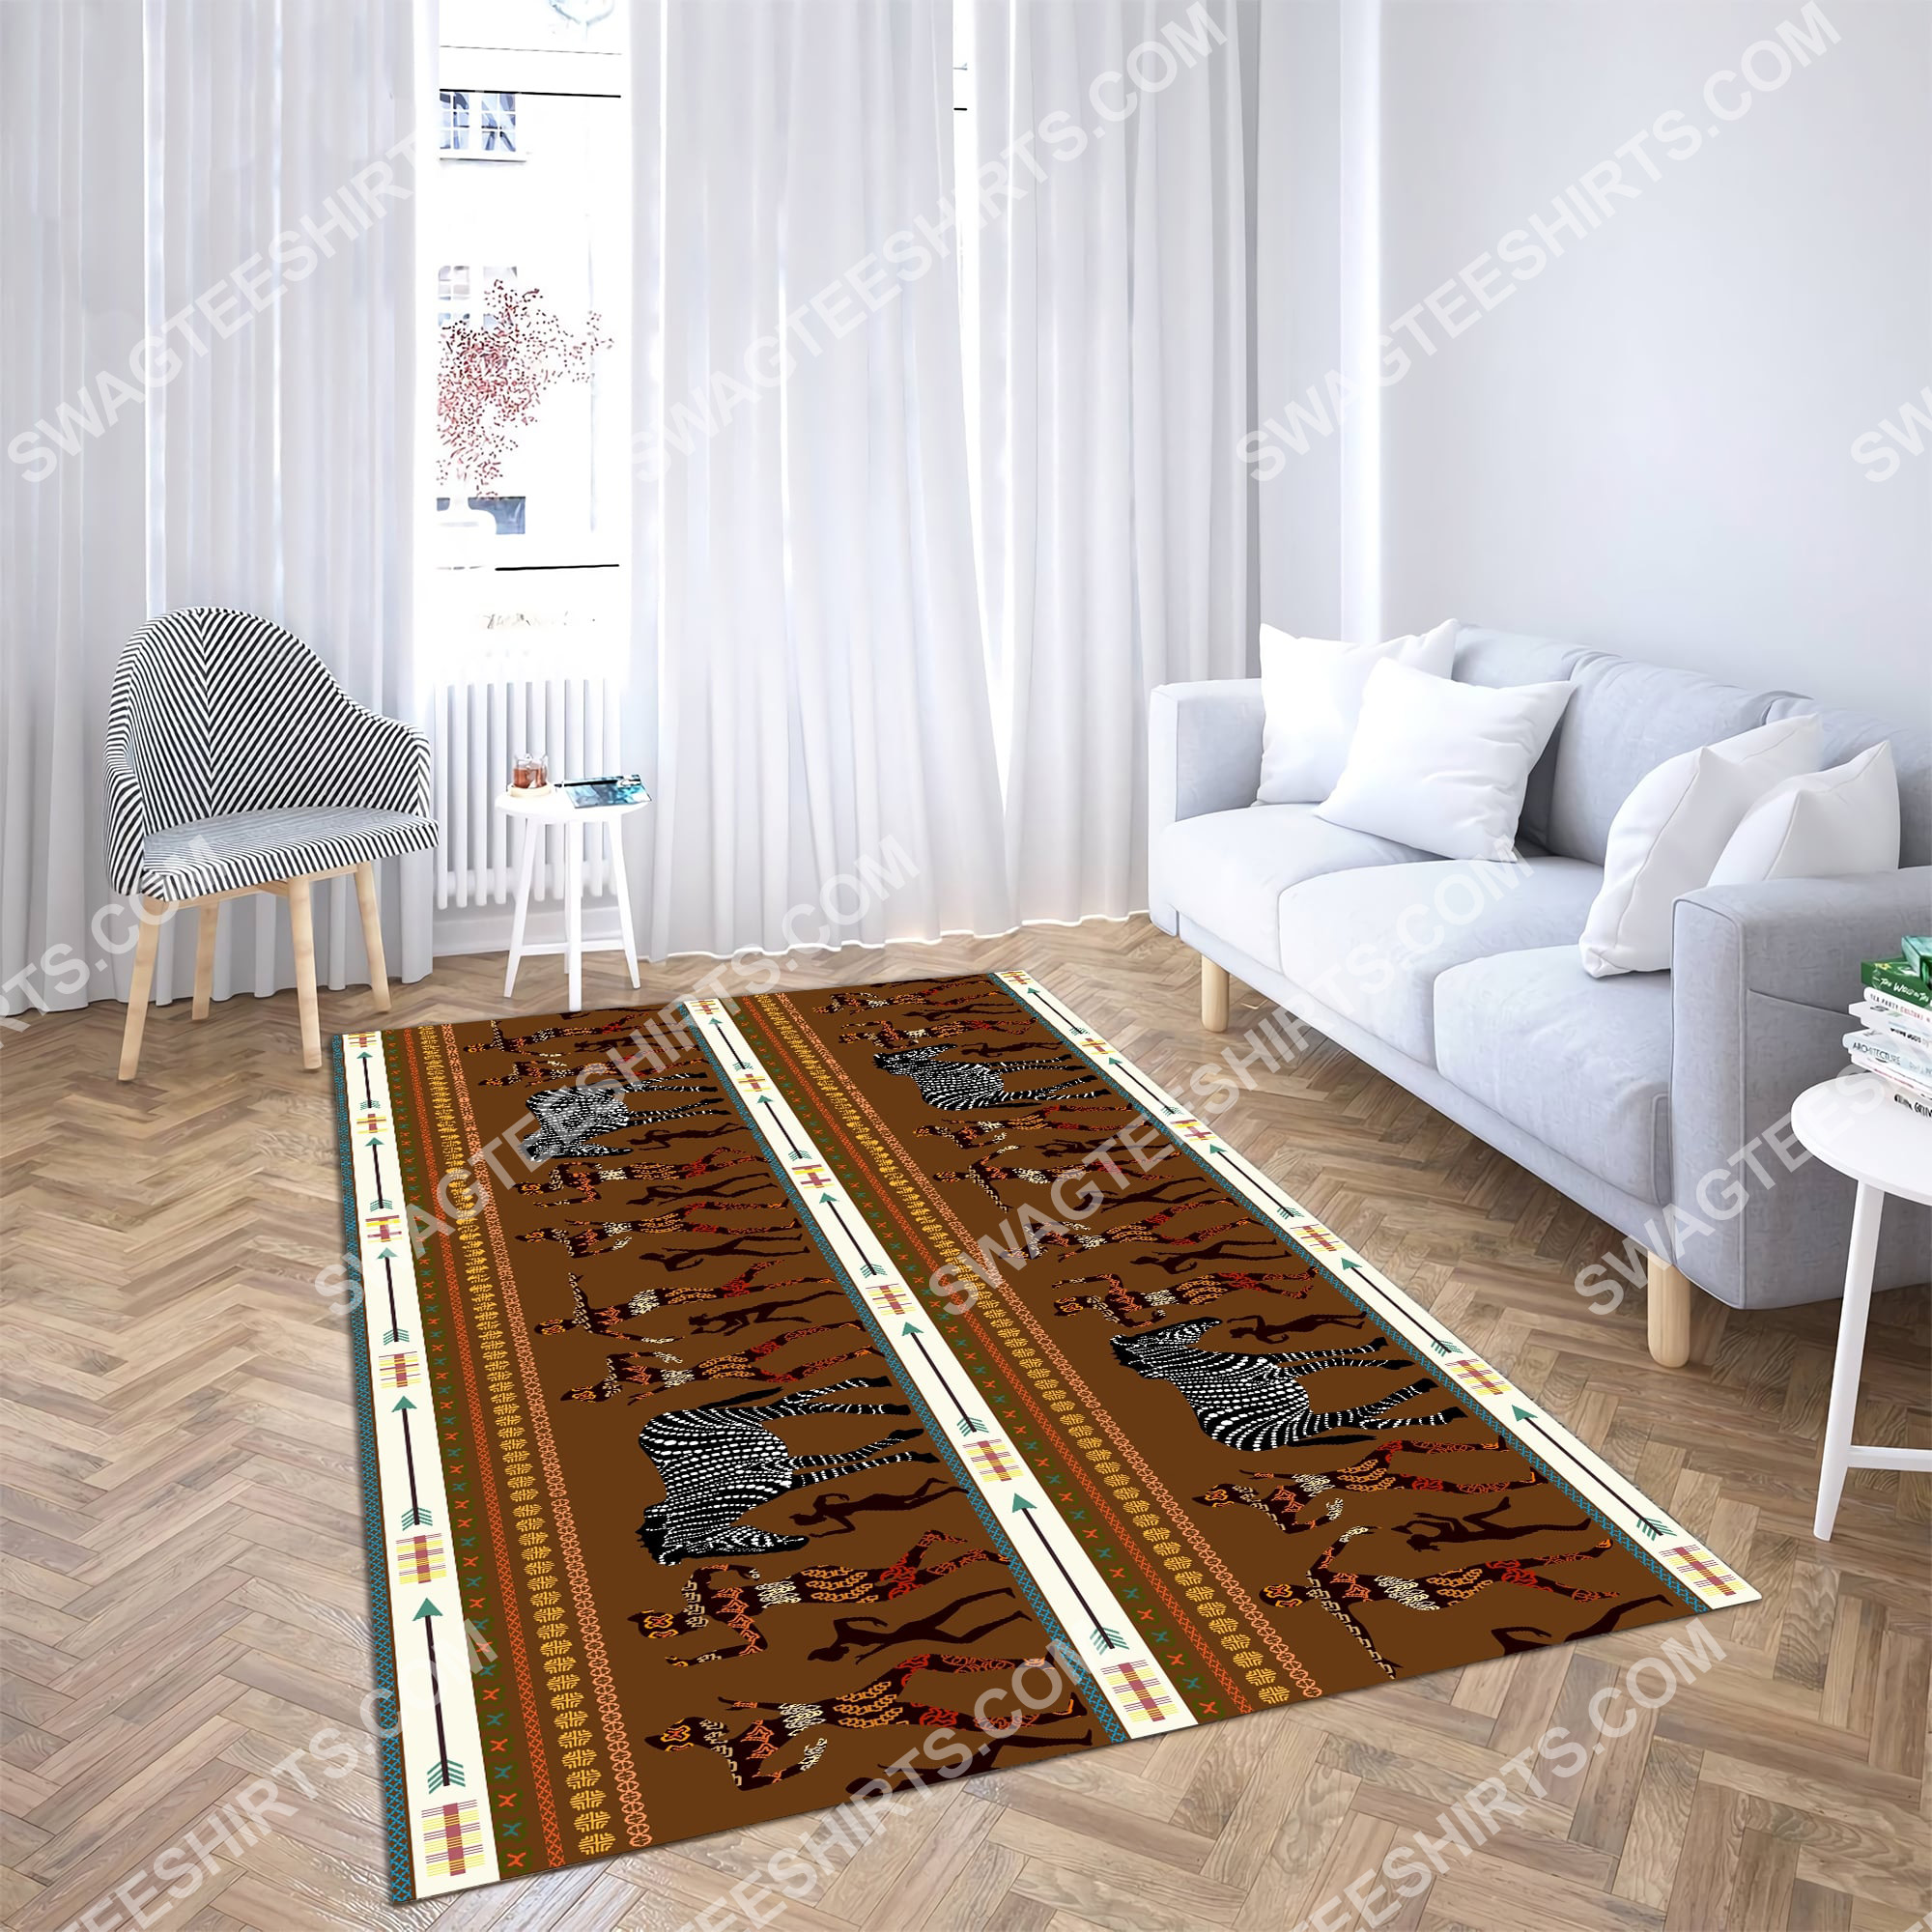 zebra dancing australian culture art all over printed rug 3(1)